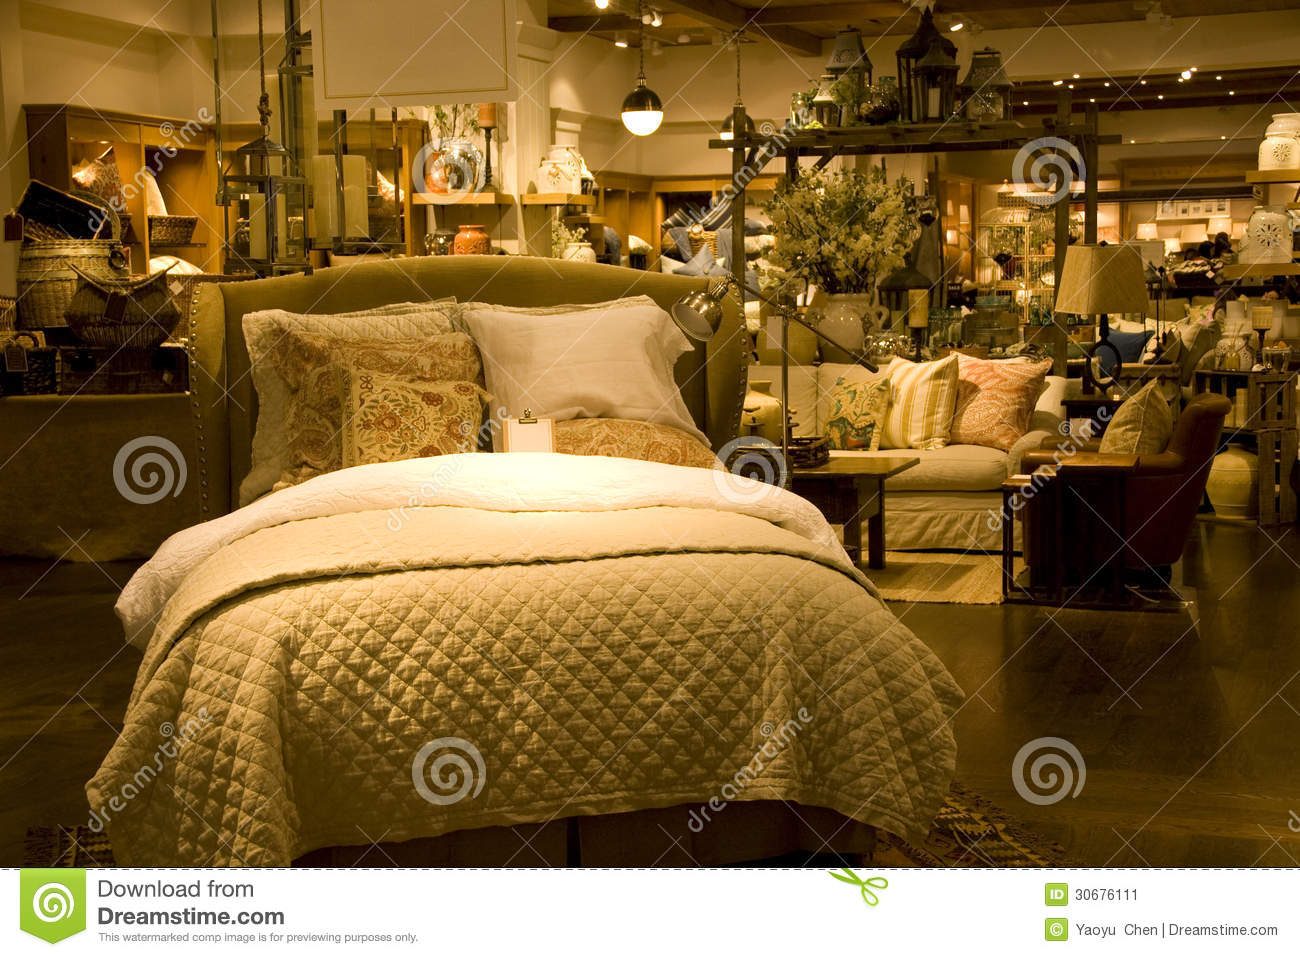 Funiture and home decor store stock image image 30676111 for How to sell home decor online